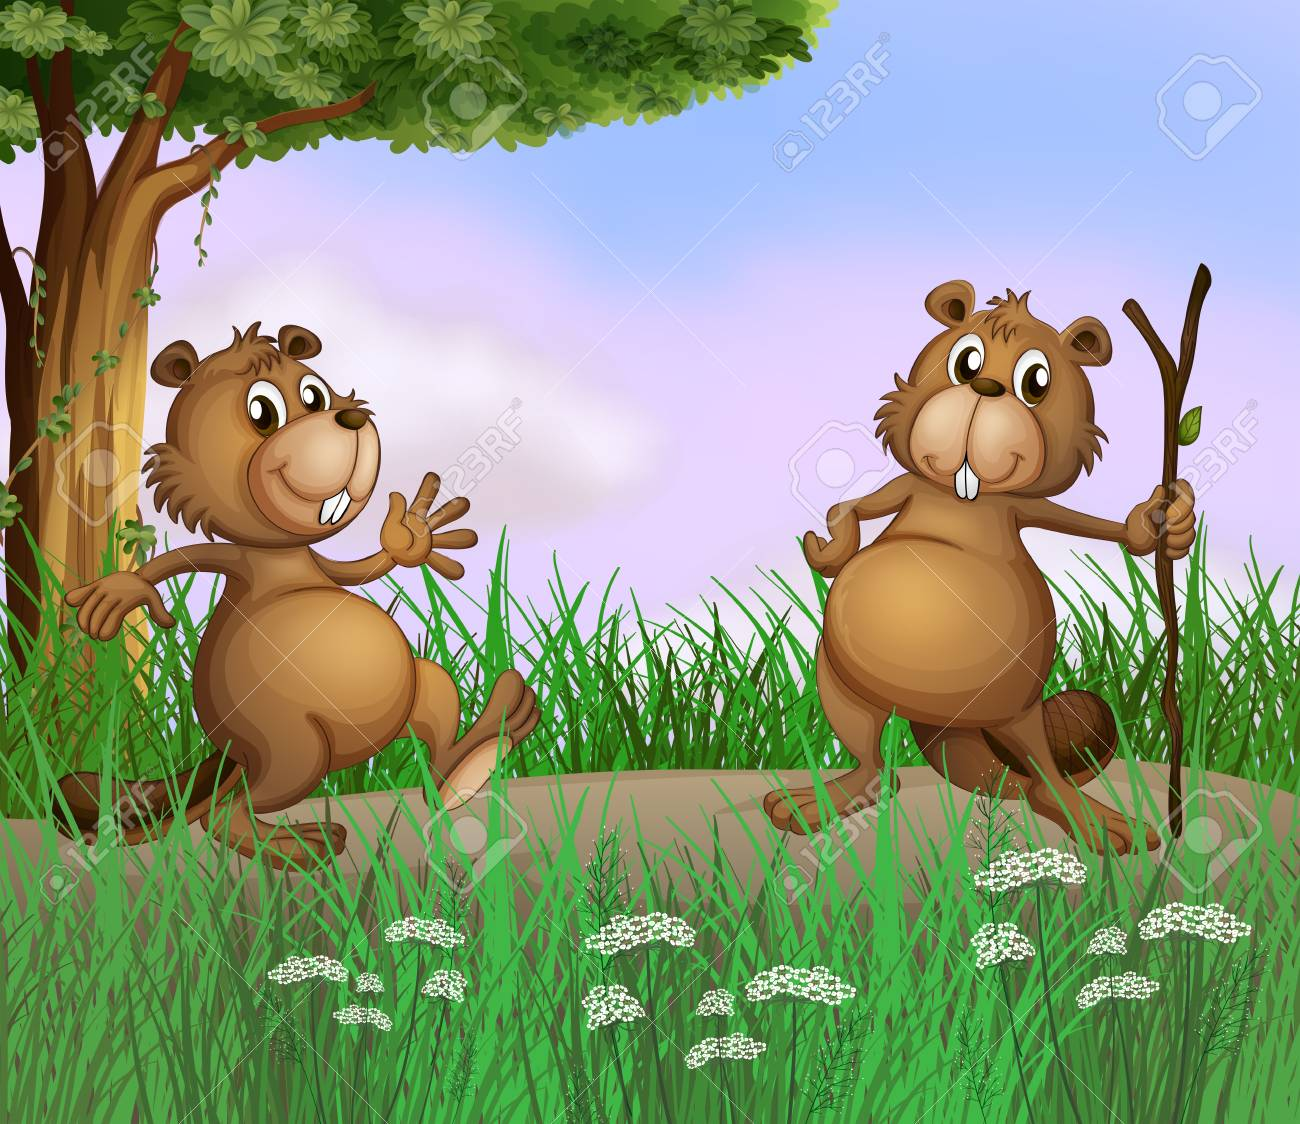 Illustration of the two beavers playing in the forest Stock Vector - 17897895